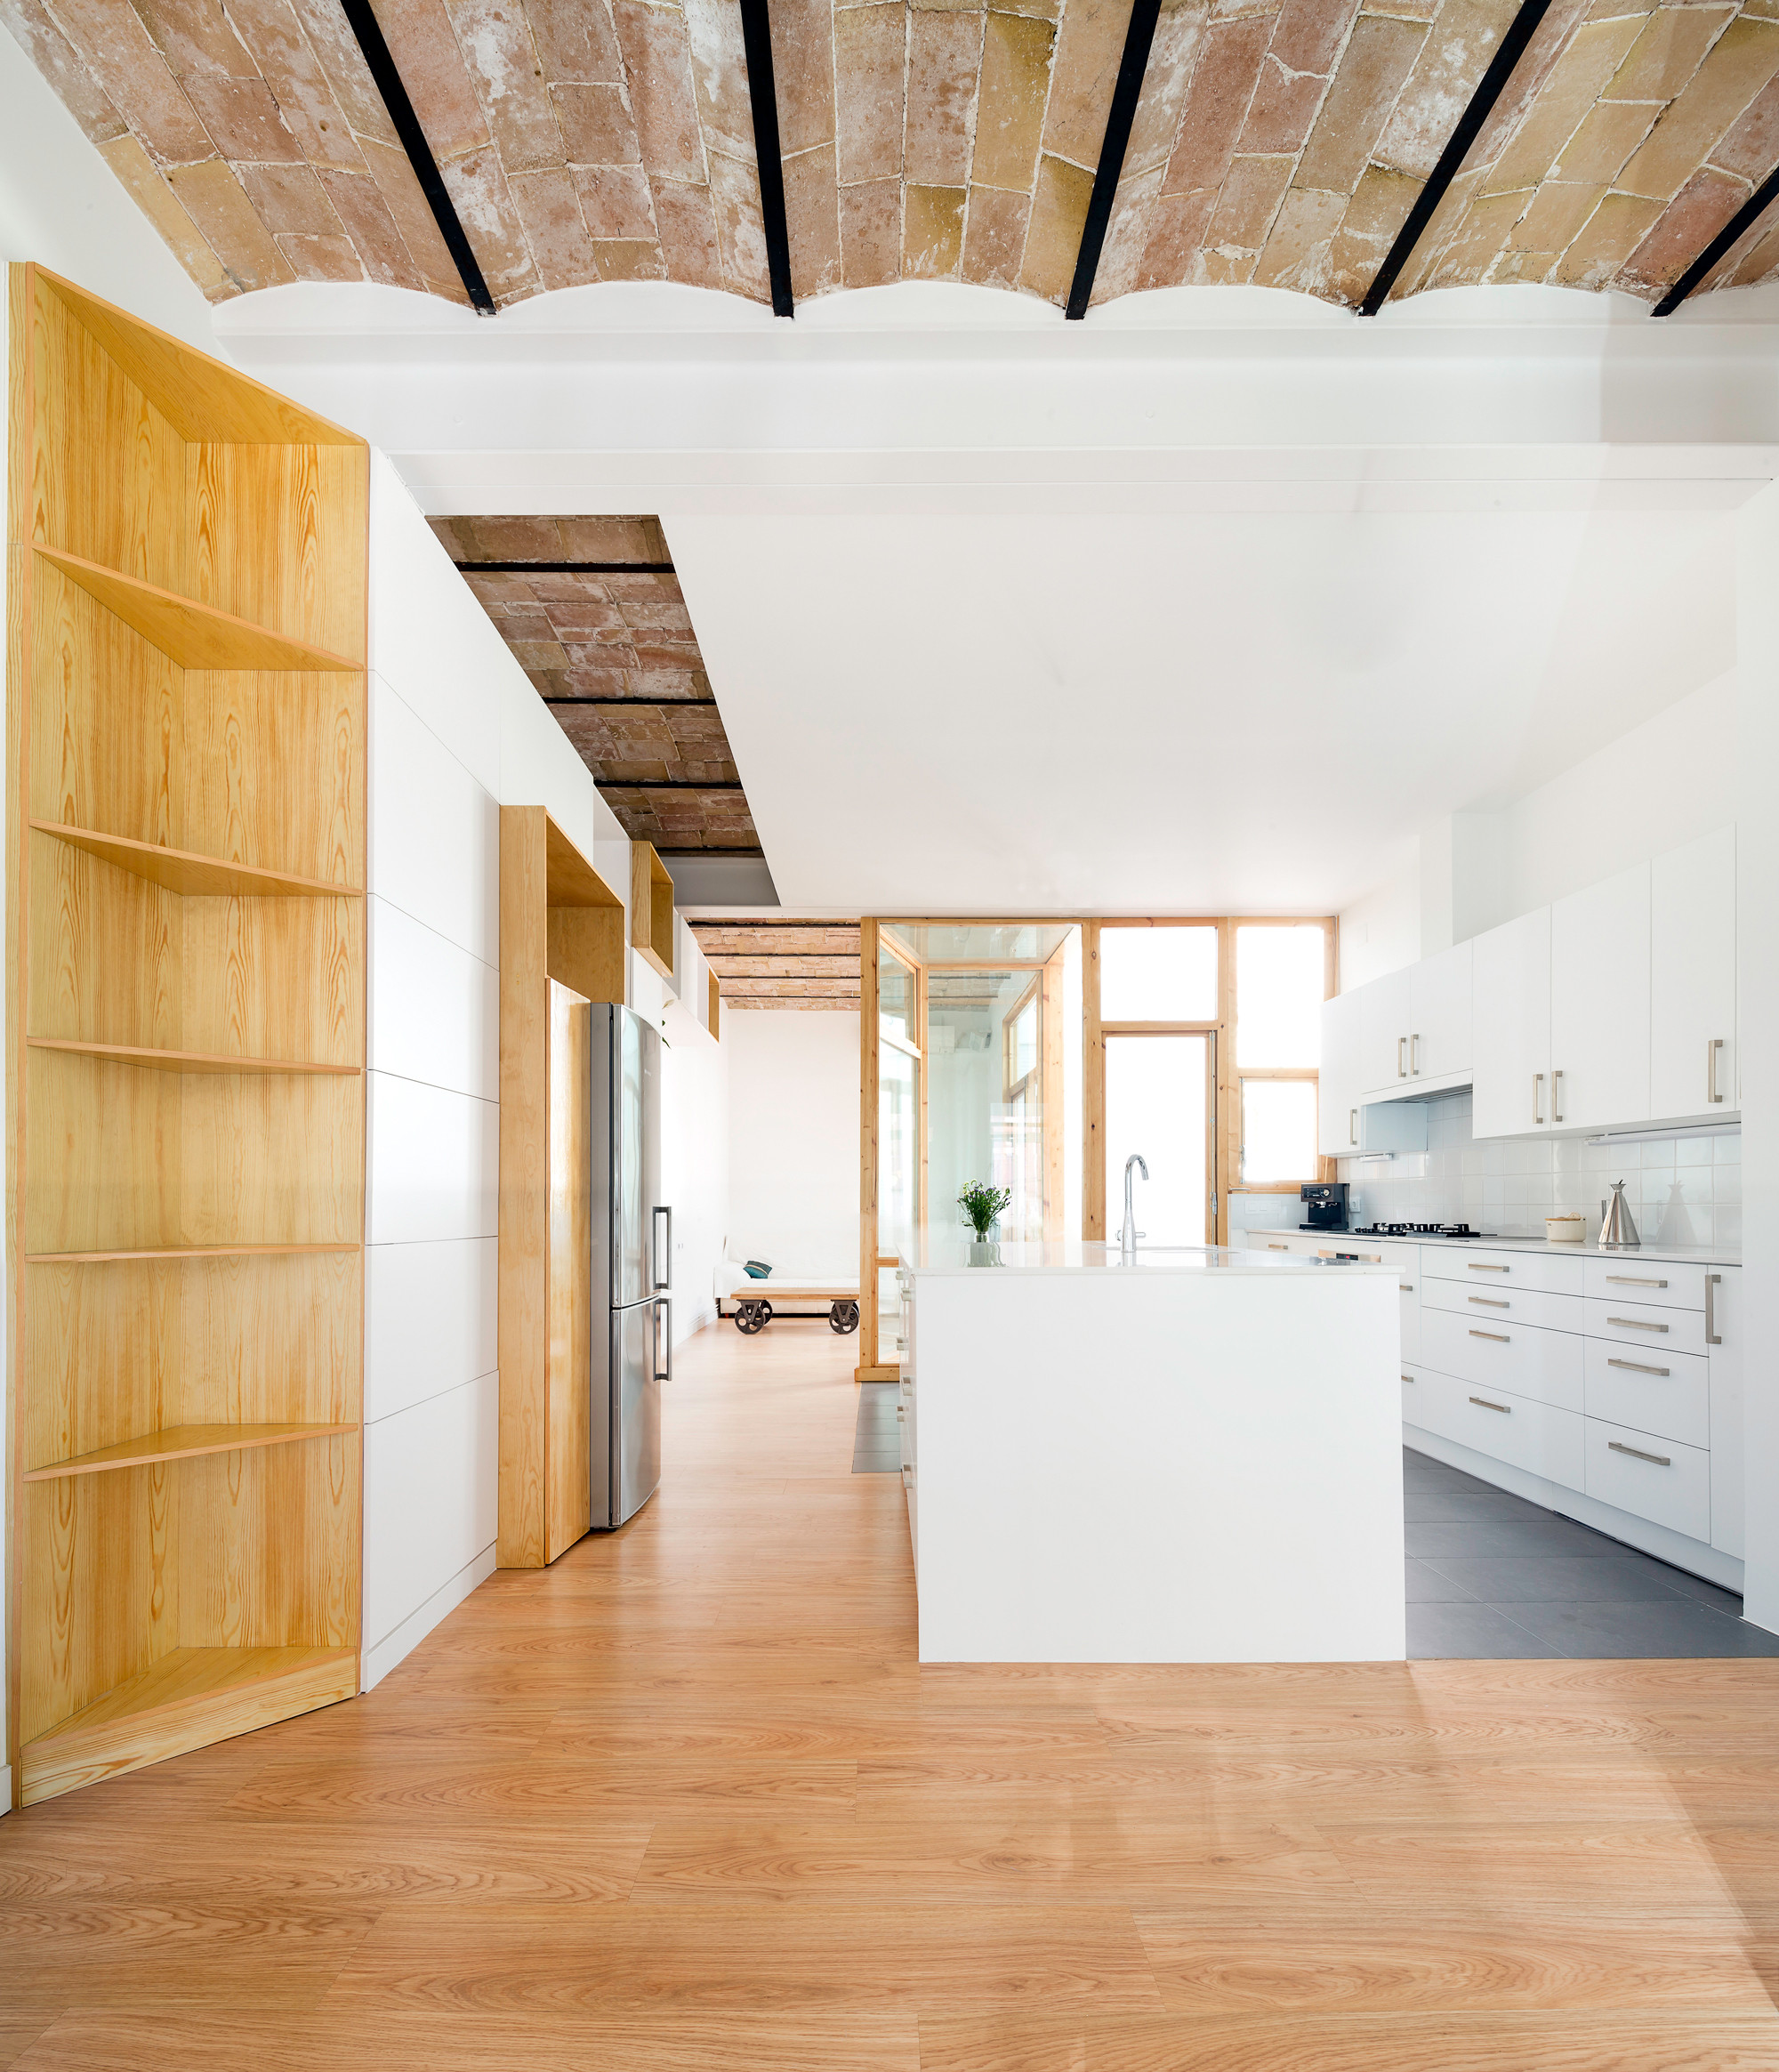 Apartment and courtyard in barcelona cavaa arquitectes for Barcelona apartment